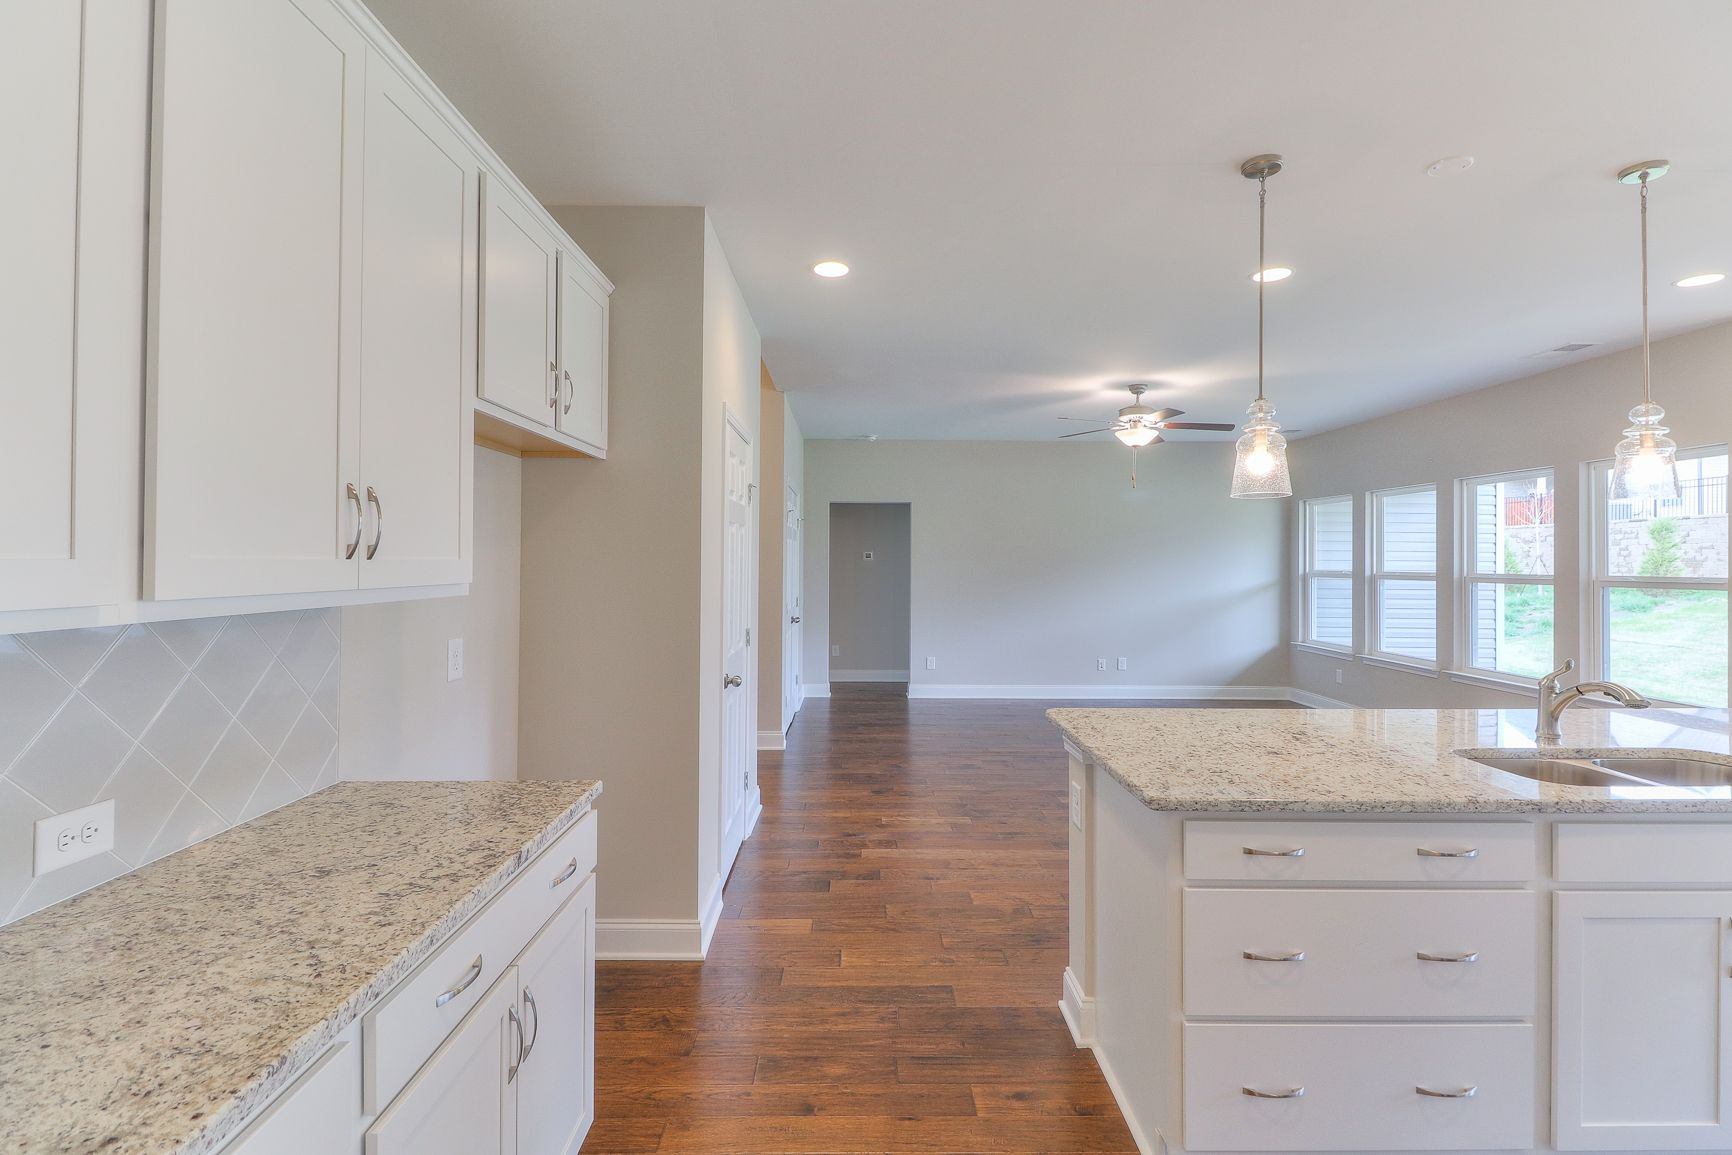 Kitchen featured in The Donelson By Goodall Homes in Chattanooga, TN